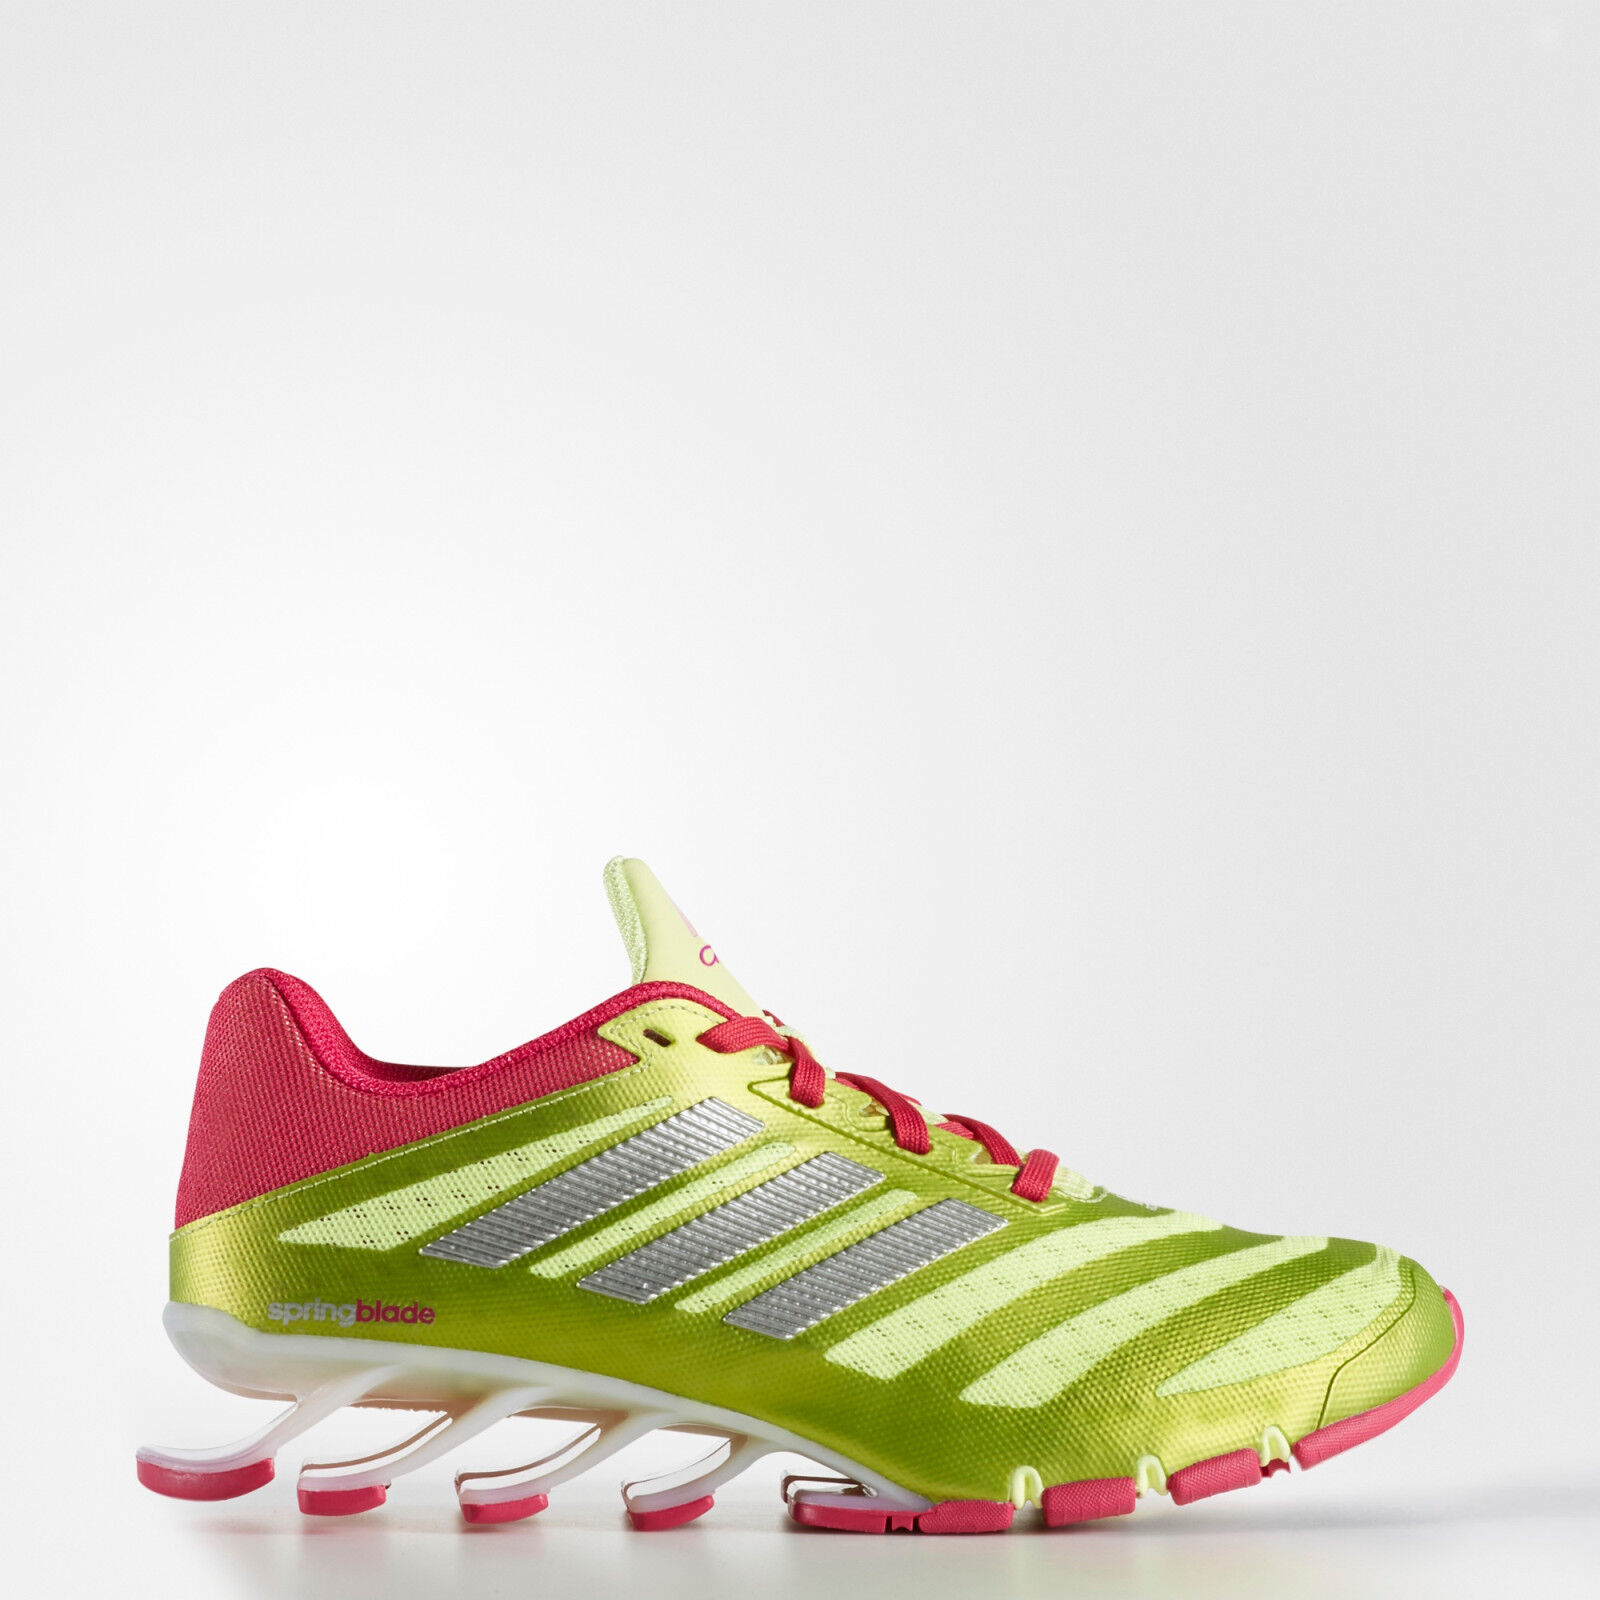 NEW~Adidas SPRINGBLADE IGNITE Running Shoe boost megabounce energy~Womens size 9